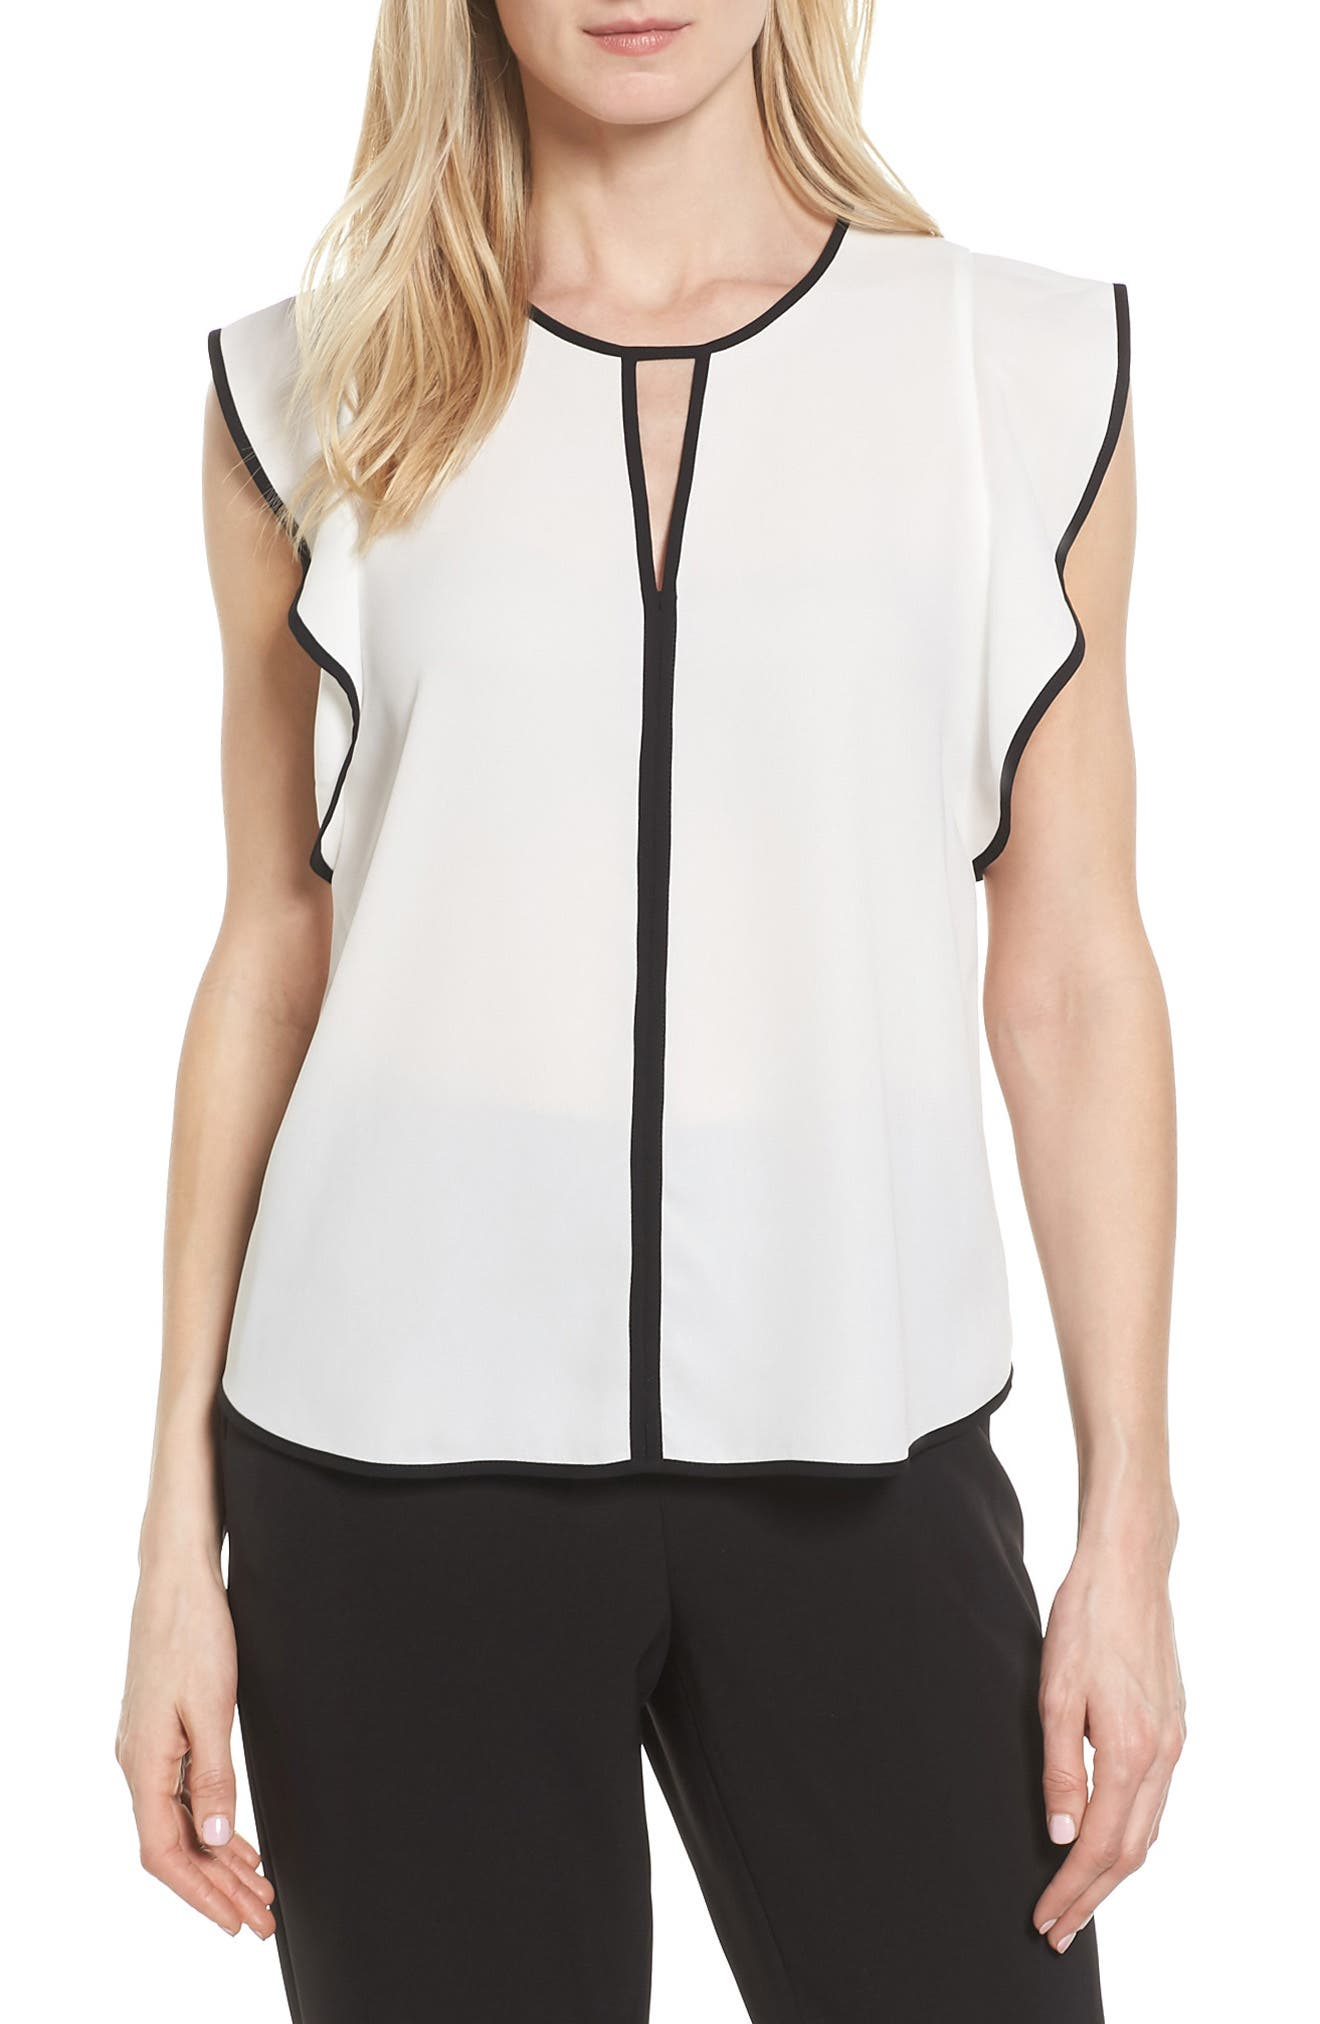 Vince Camuto Contrast Piped Keyhole Blouse (Regular & Petite)